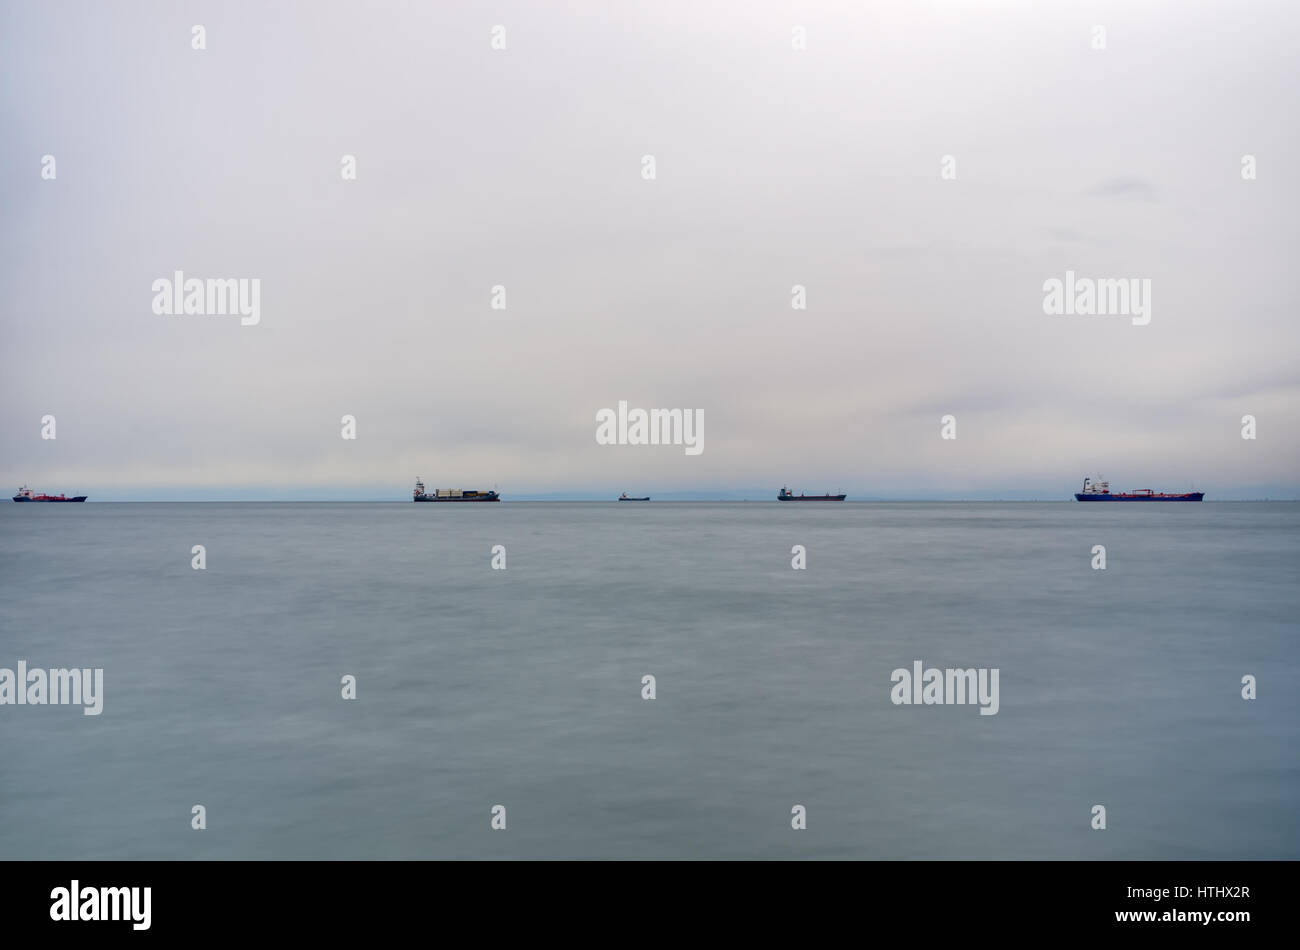 The gulf of Thessaloniki, Greece, under a cloudy sky - Stock Image